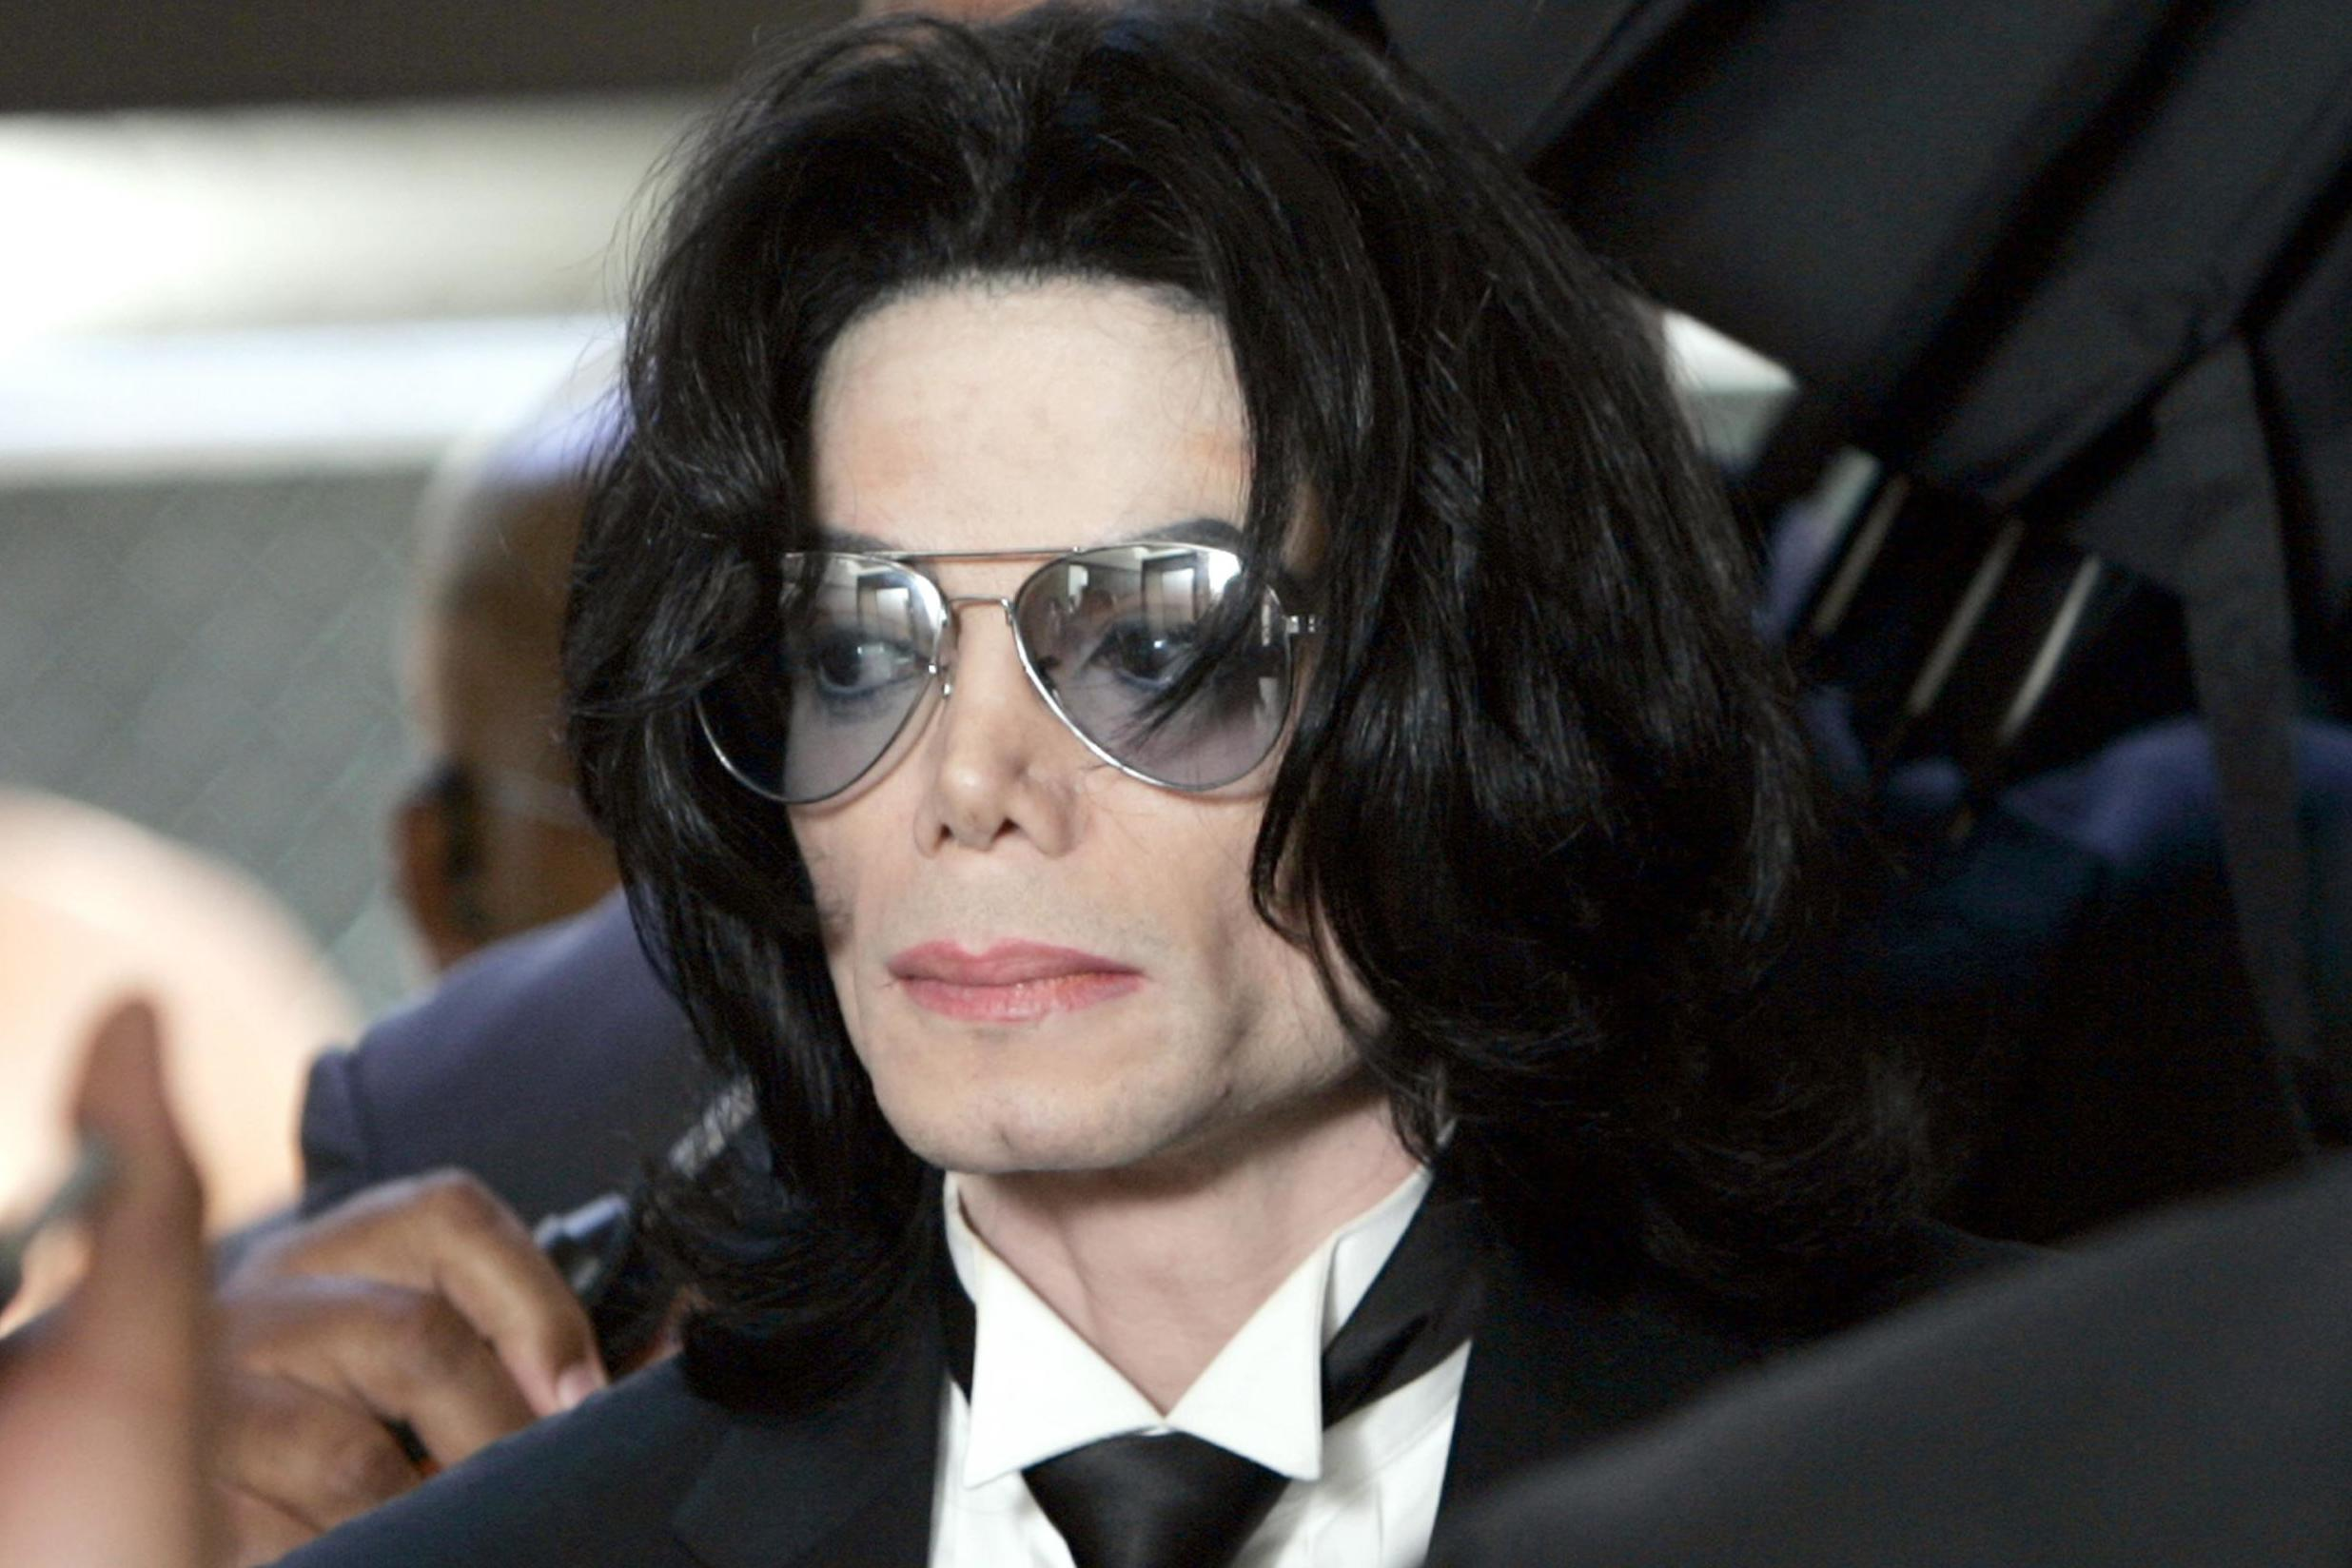 Michael Jackson's nephew TJ says he is now sole guardian of late singer's children